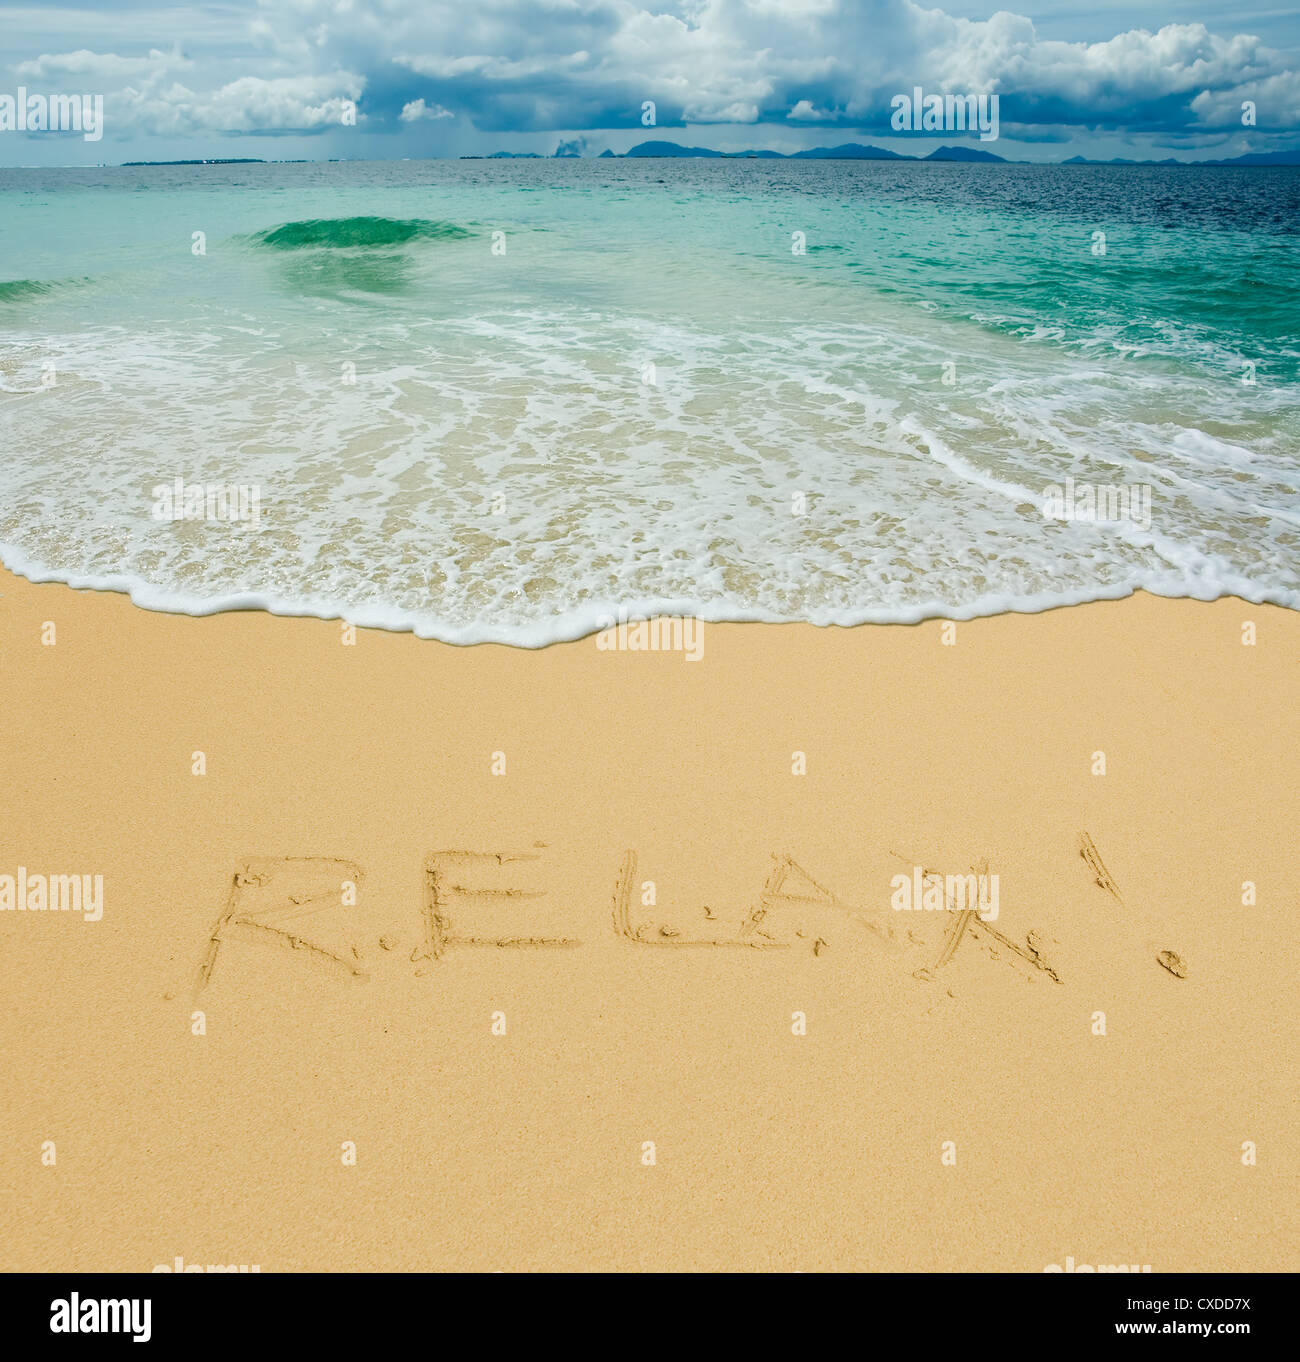 relax written in a sandy tropical beach - Stock Image